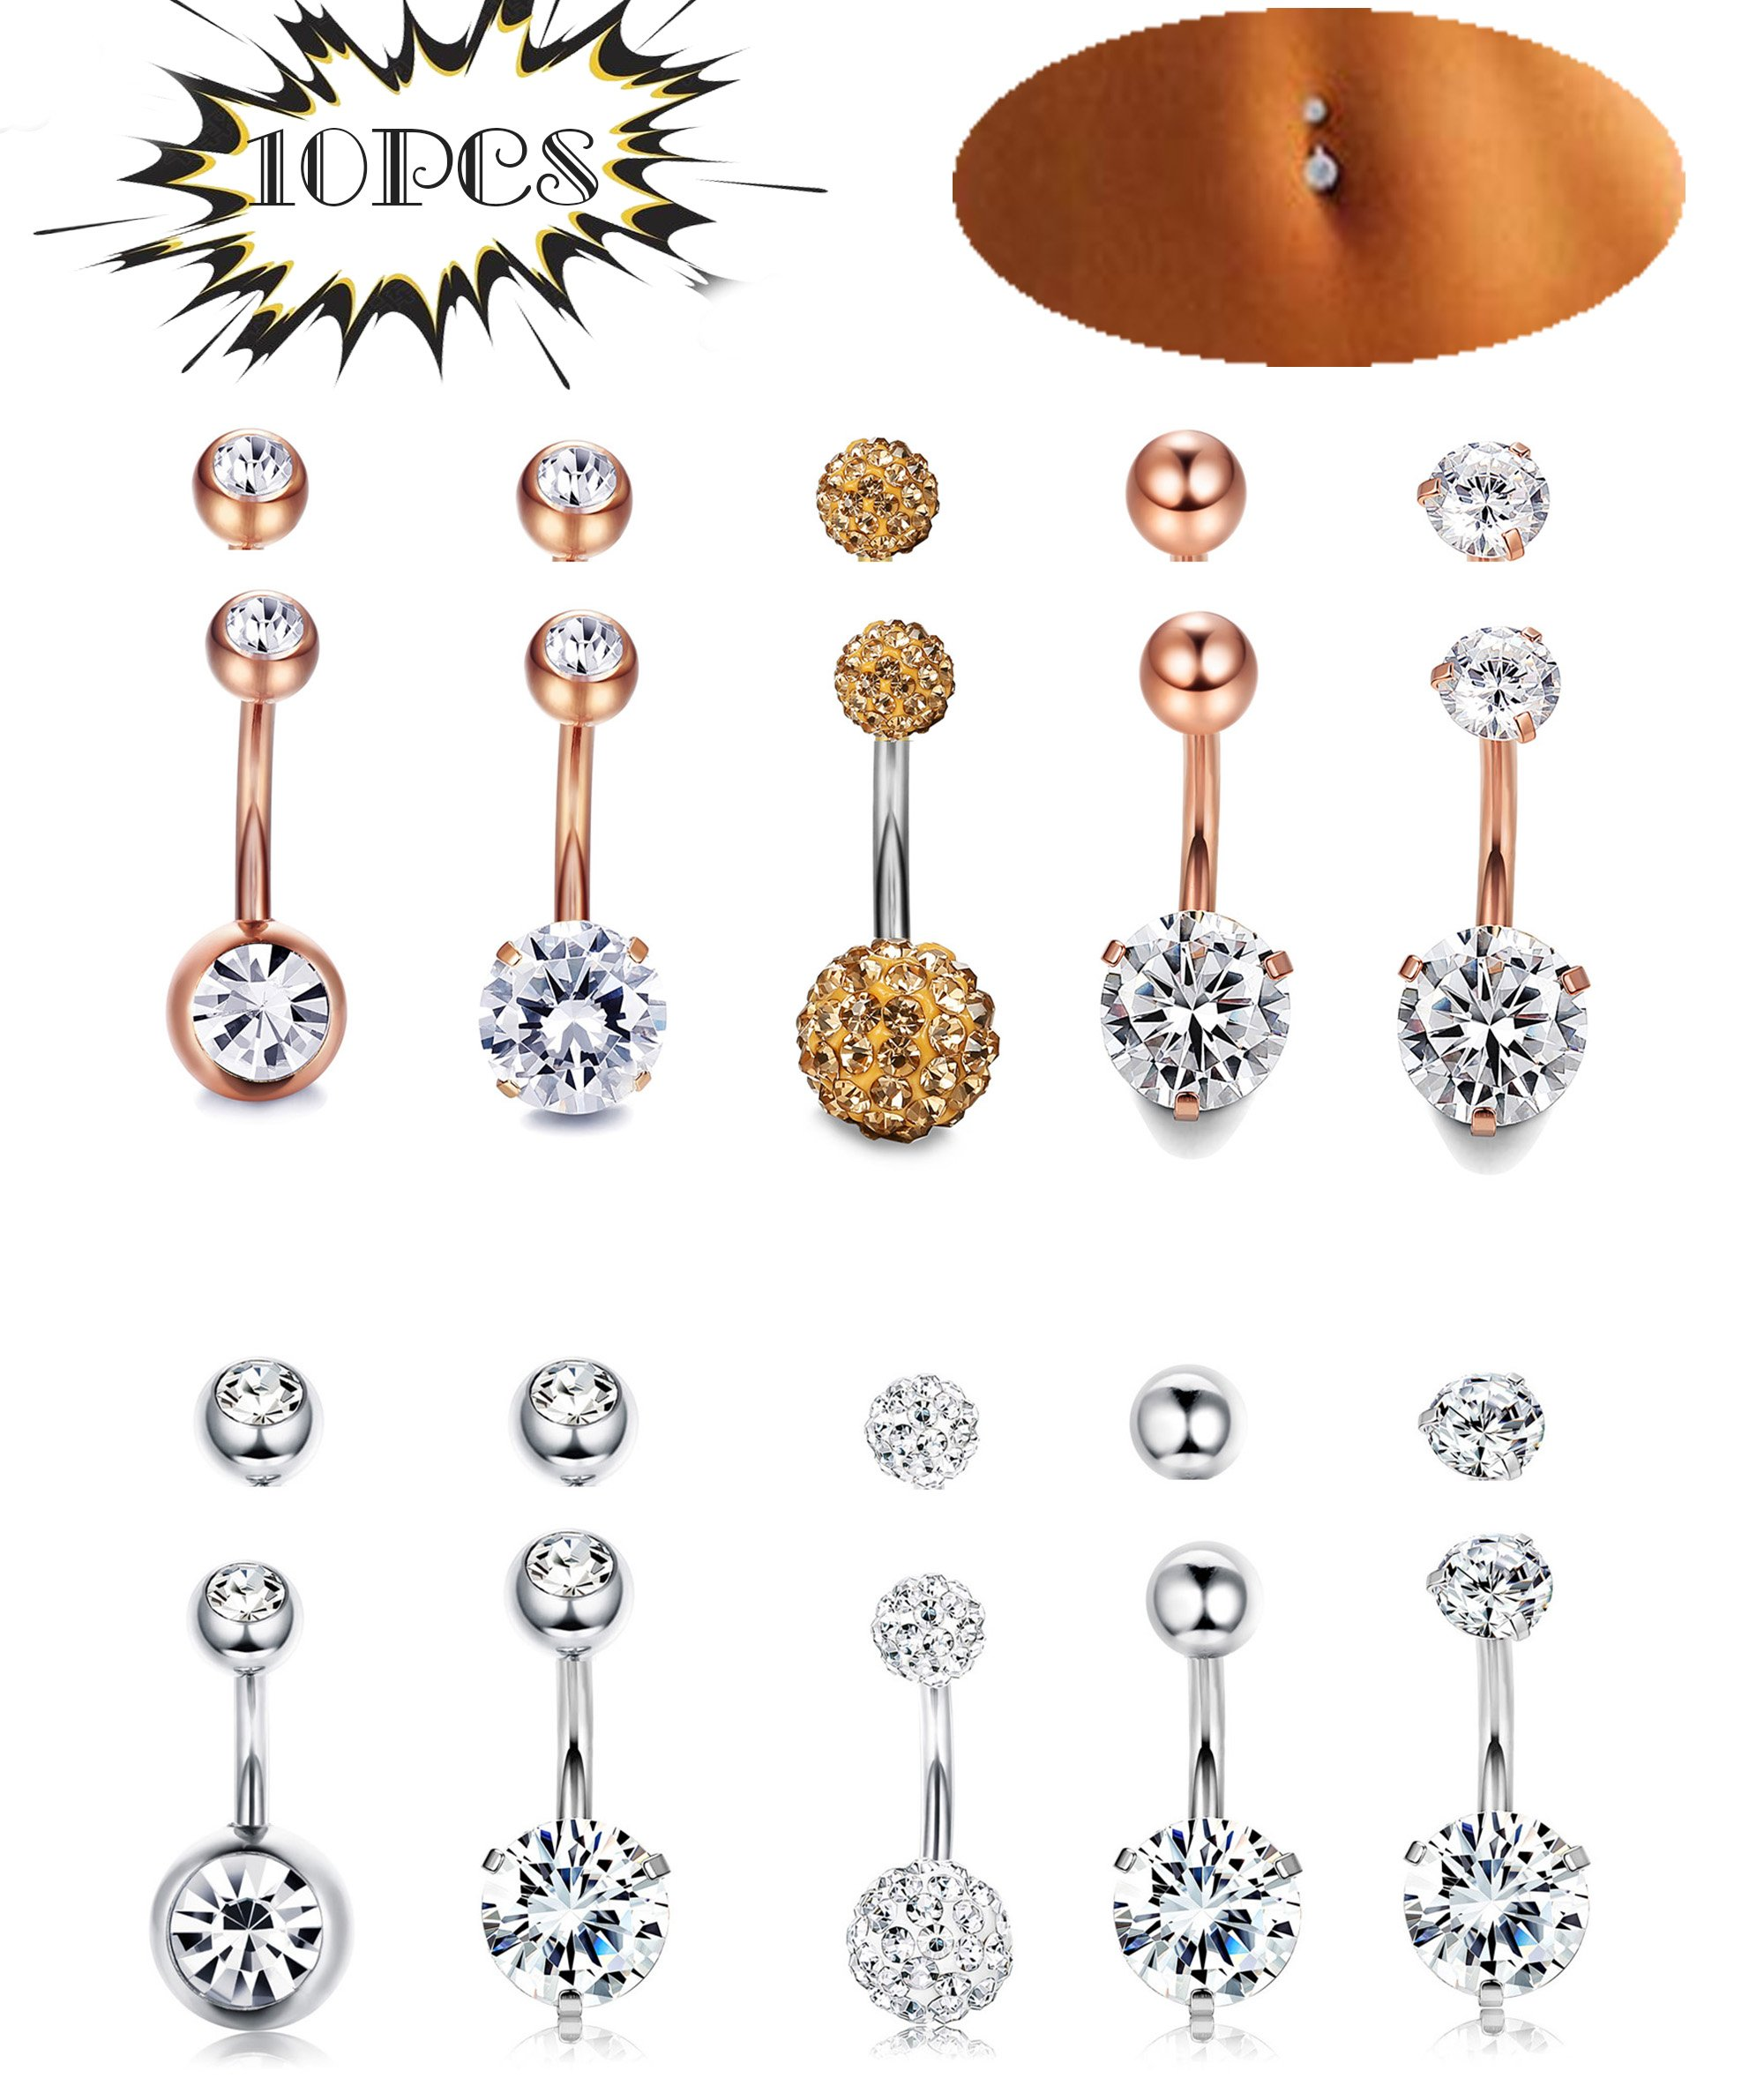 LOYALLOOK 5-6pcs 14G Stainless Steel Belly Button Rings for Women Girls Navel Rings Crystal CZ Body Piercing (C:10PCS Rose silver)